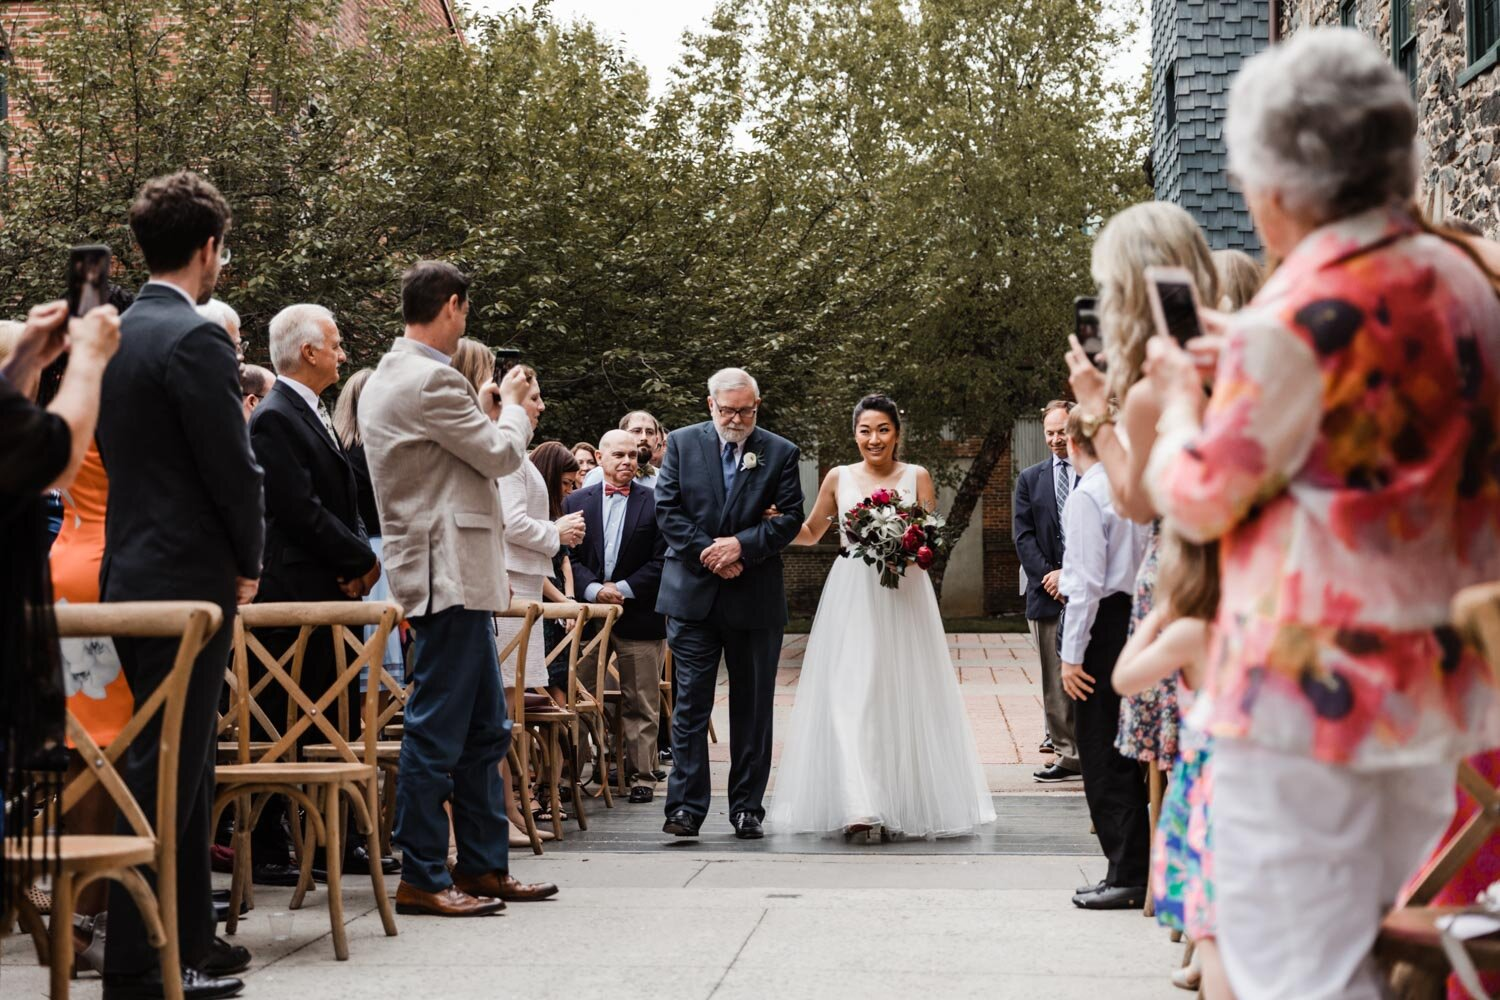 Mt Washington Mill Dye House industrial Baltimore wedding by Barbara O Photography-28.jpg